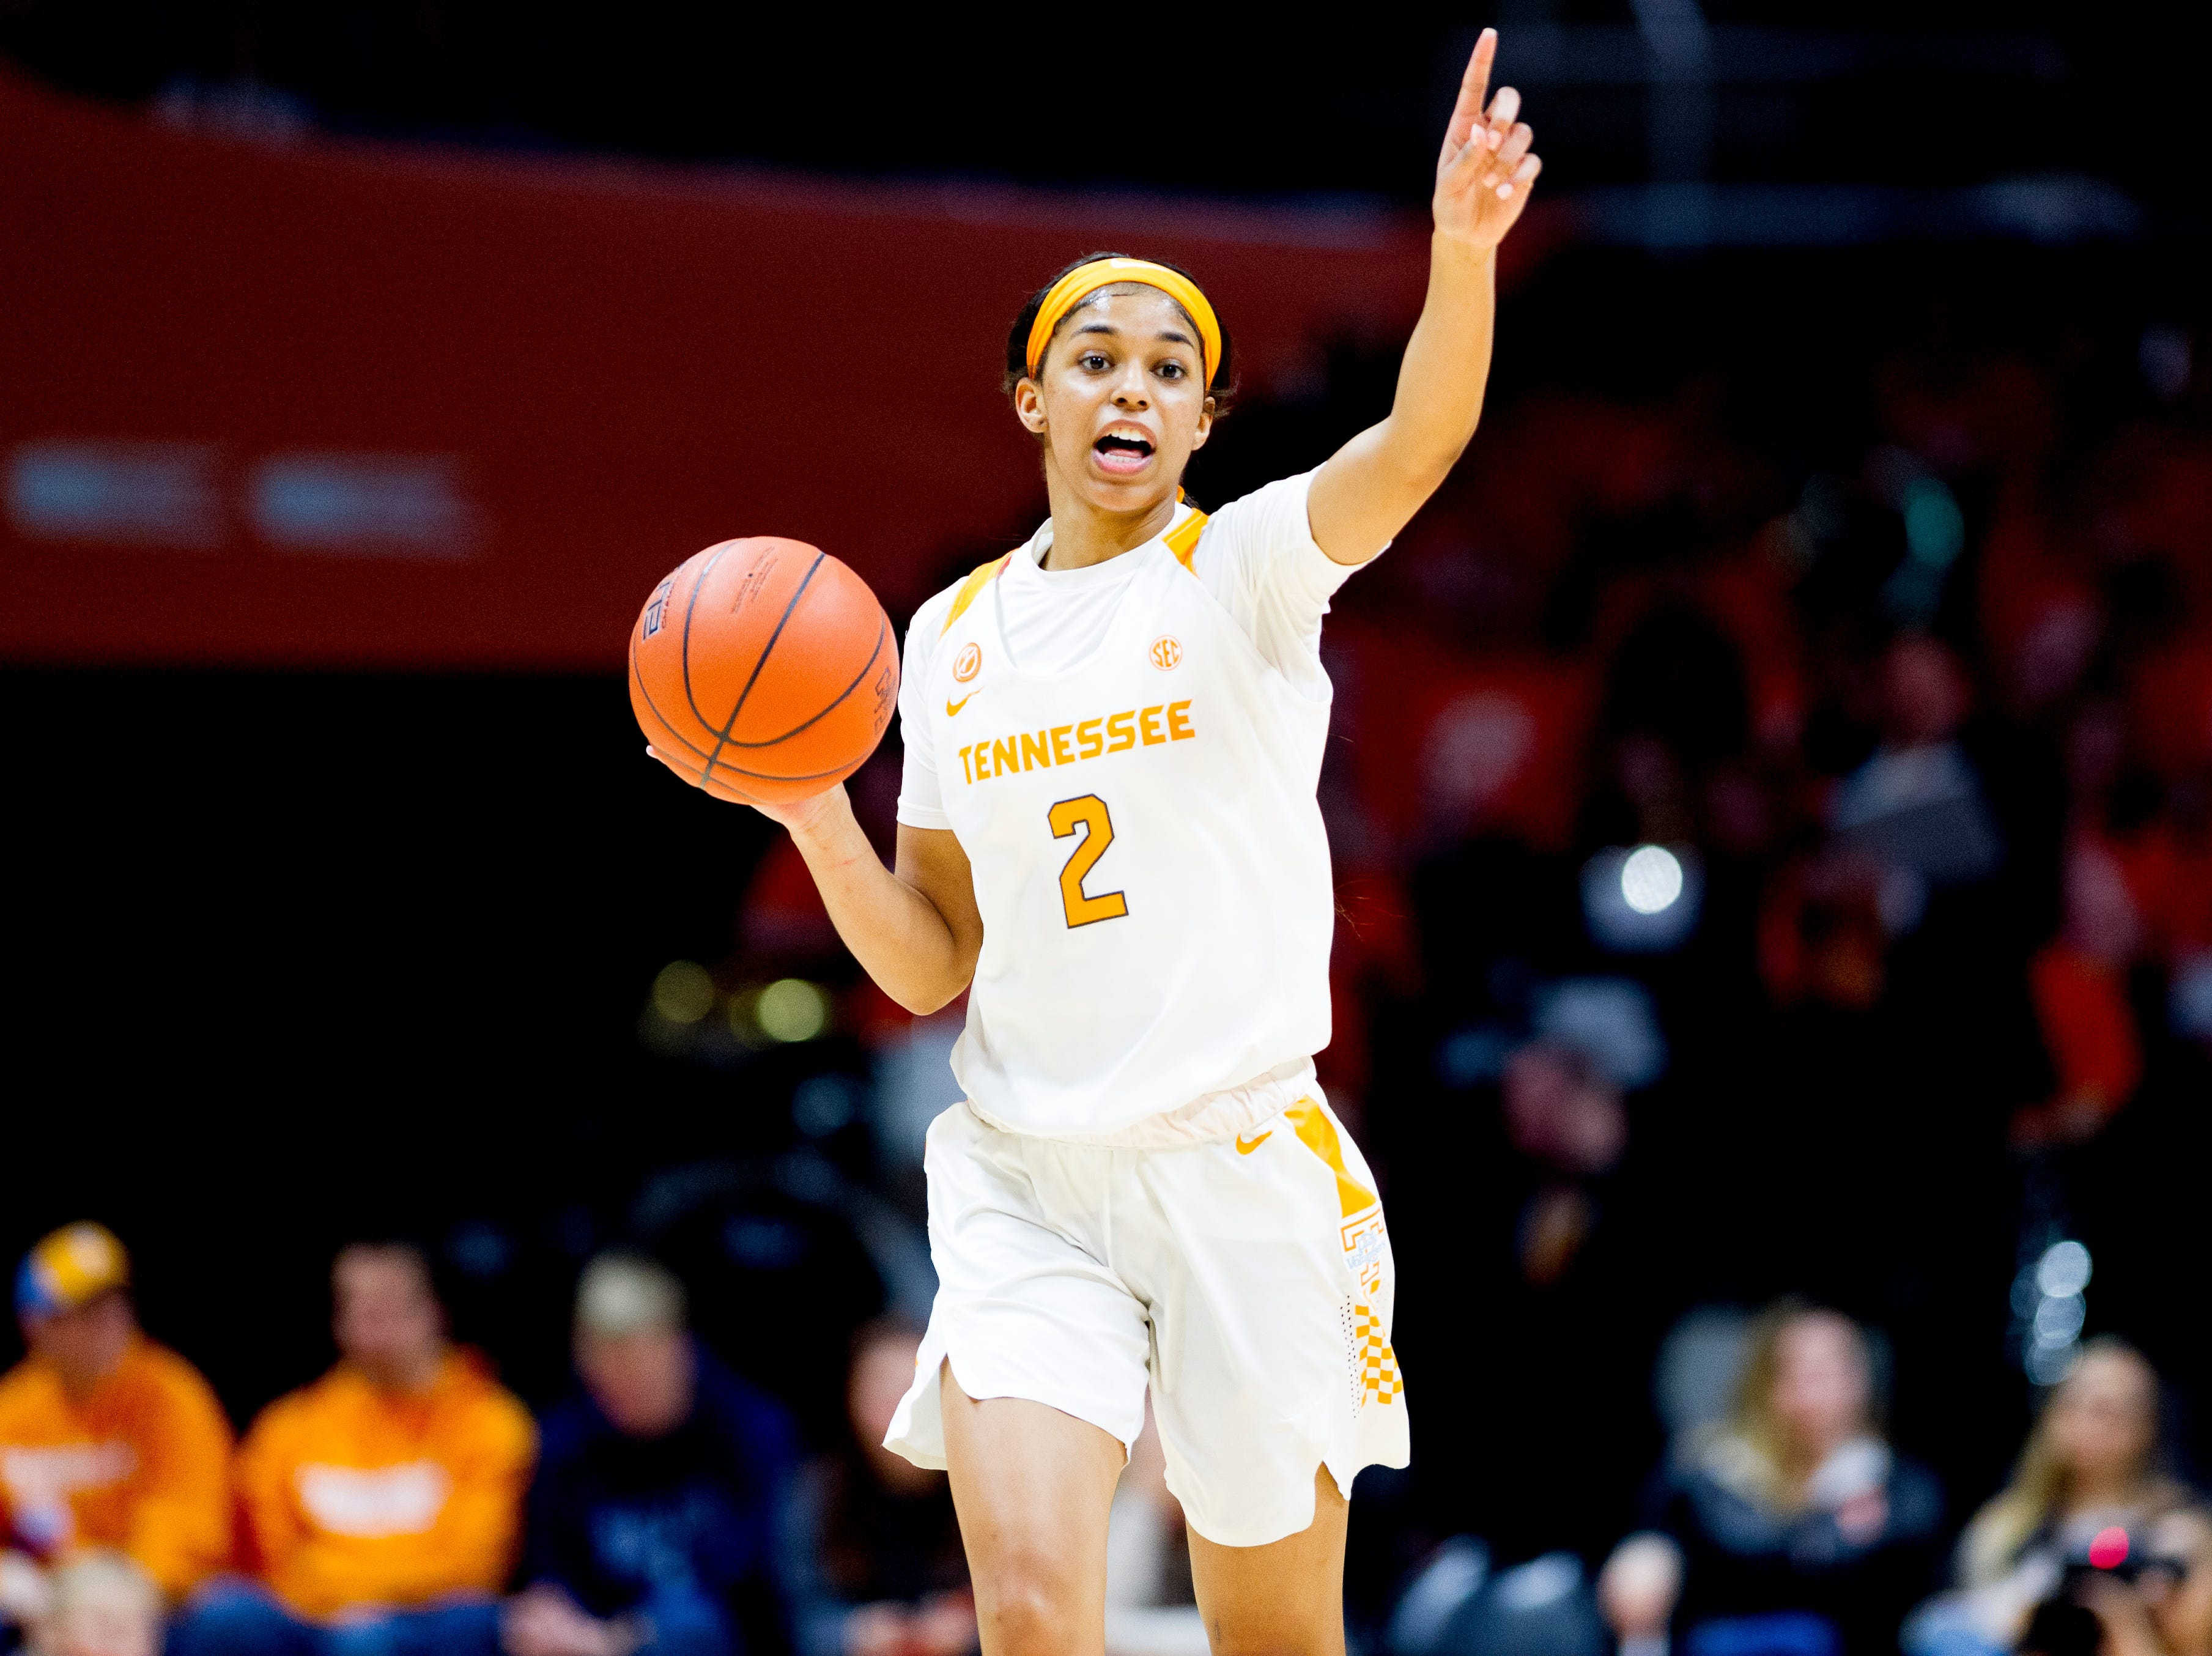 Tennessee guard Evina Westbrook (2) gestures to teammates down the court during a game between Tennessee and Arkansas at Thompson-Boling Arena in Knoxville, Tennessee on Monday, January 21, 2019.